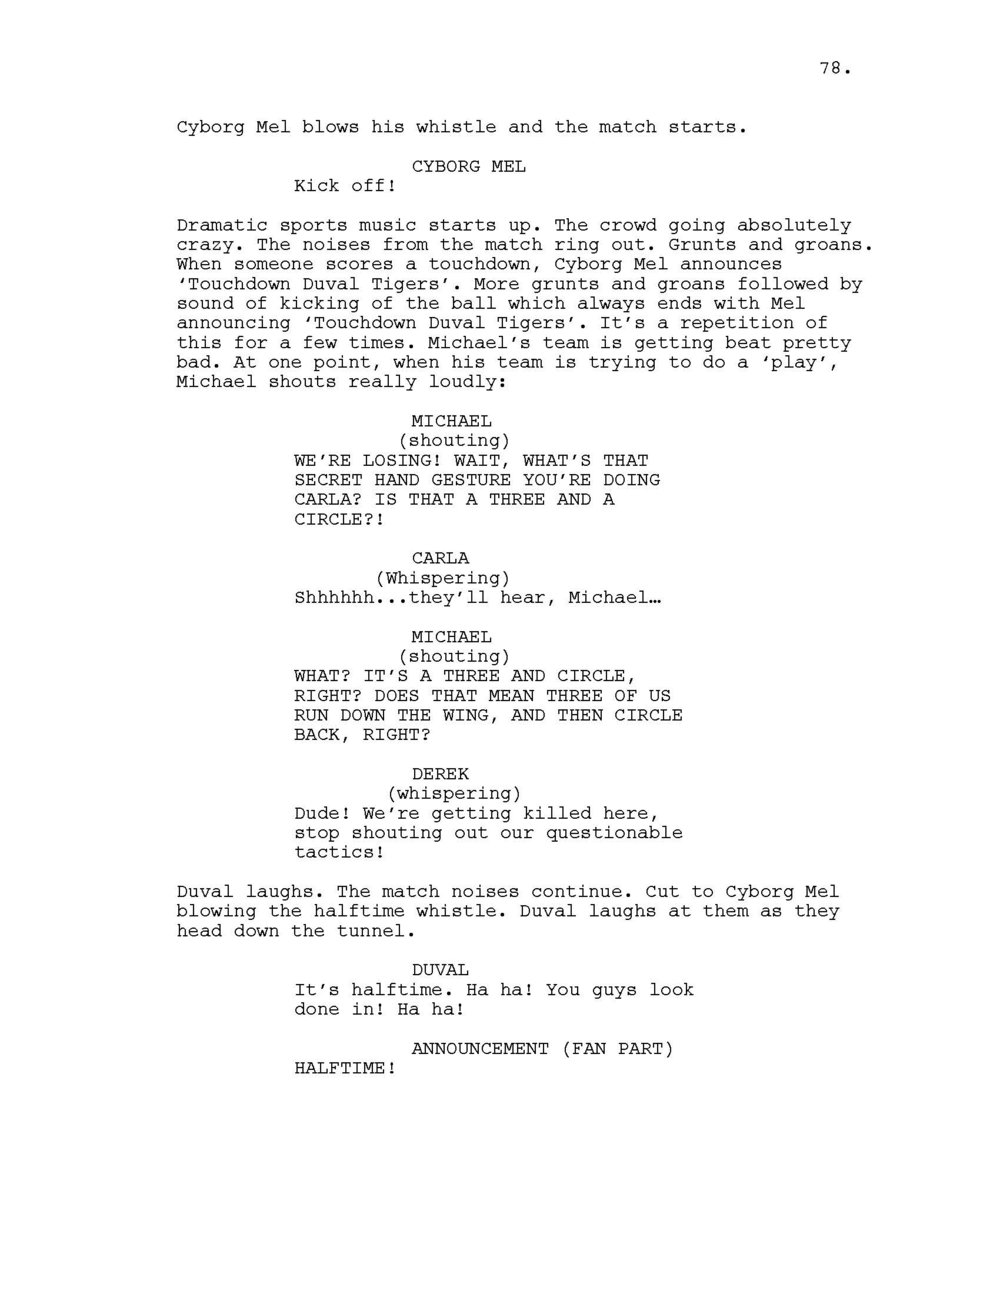 INVISIBLE WORLD SCRIPT_Page_079.jpg